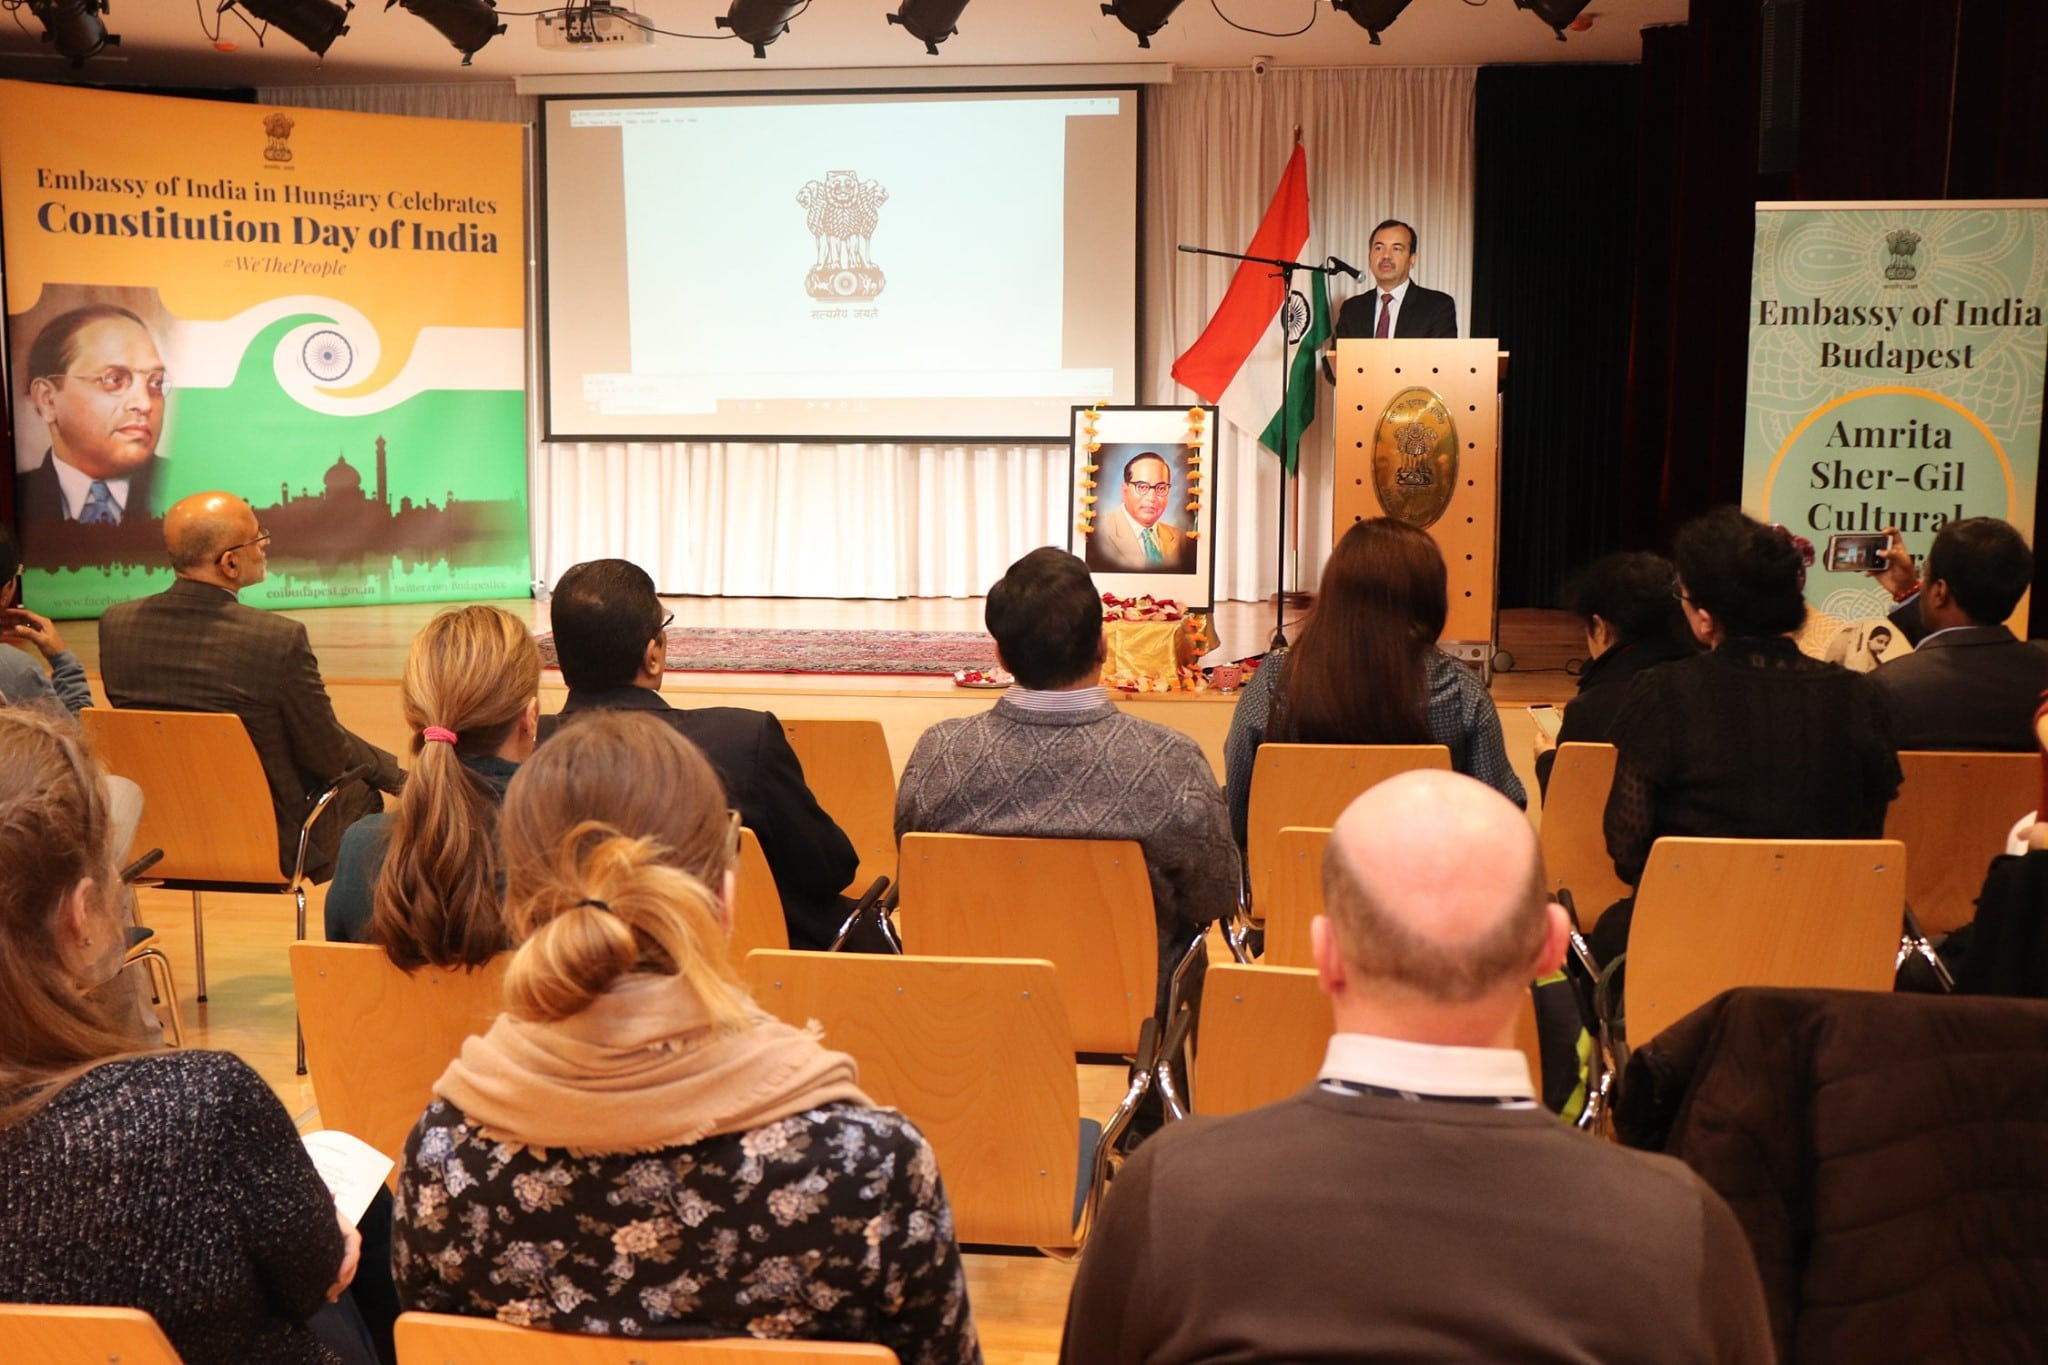 70th Constitution Day Of India was celebrated in Budapest